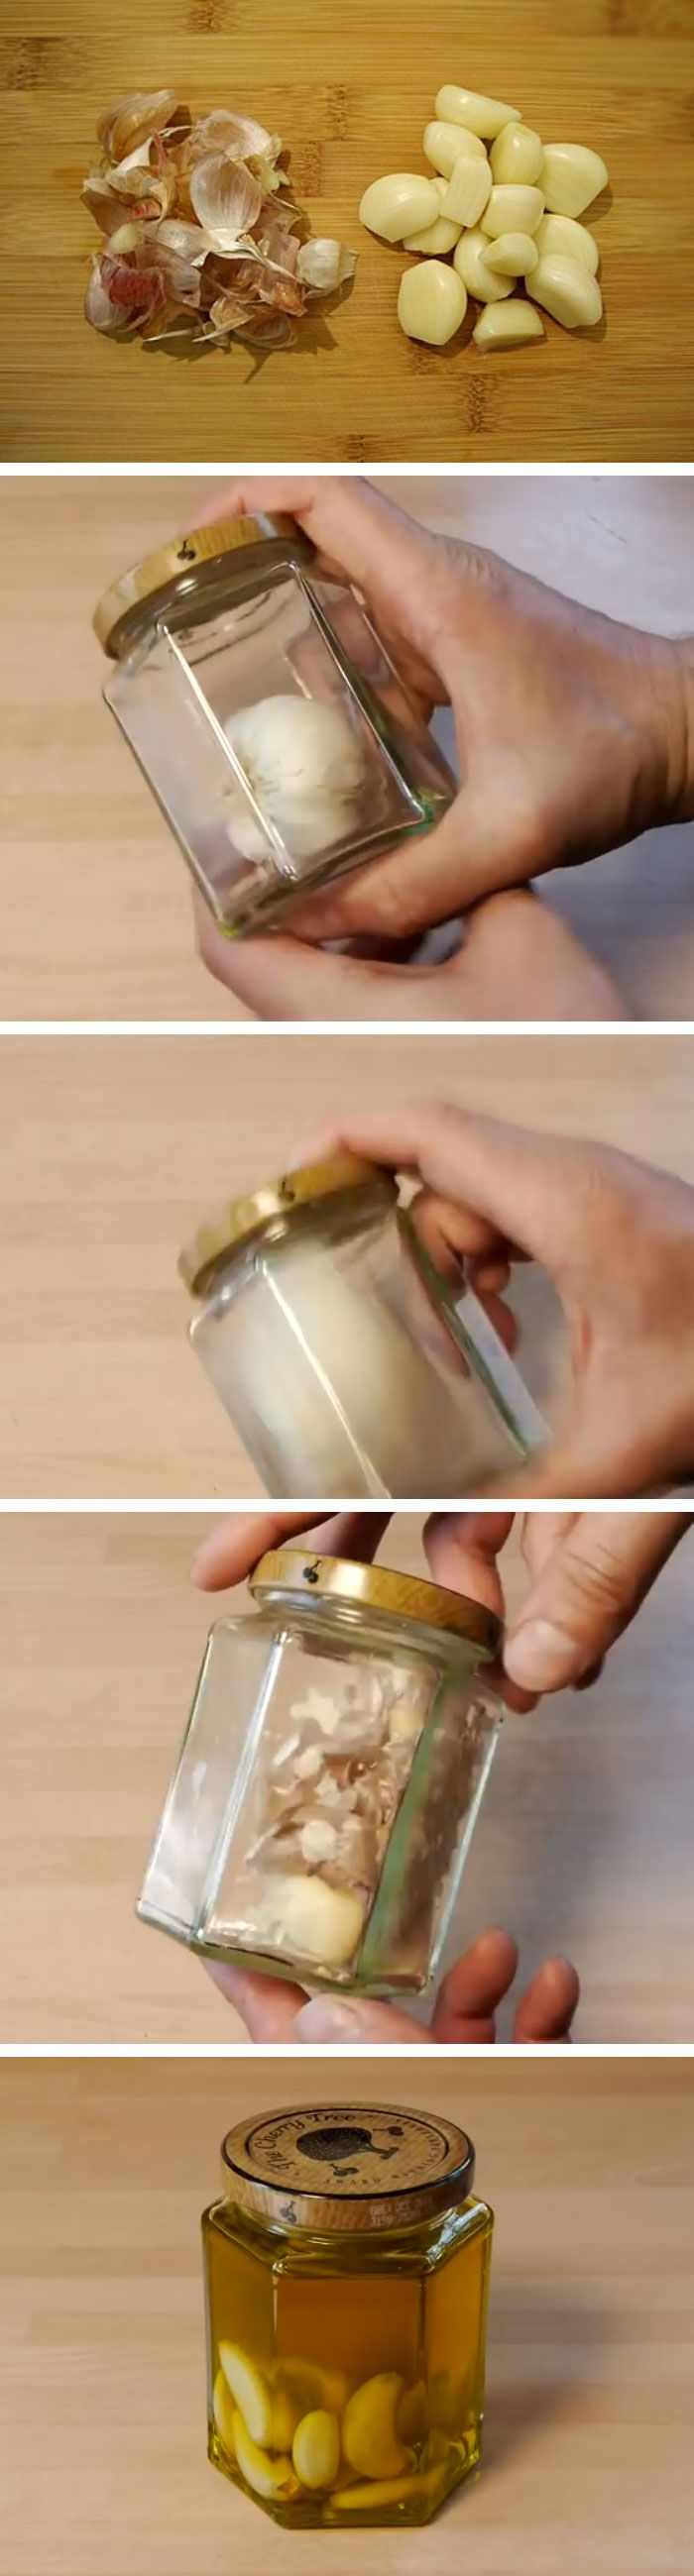 25 Awesome Life Hacks Every Girl Should Know! - Craft or DIY